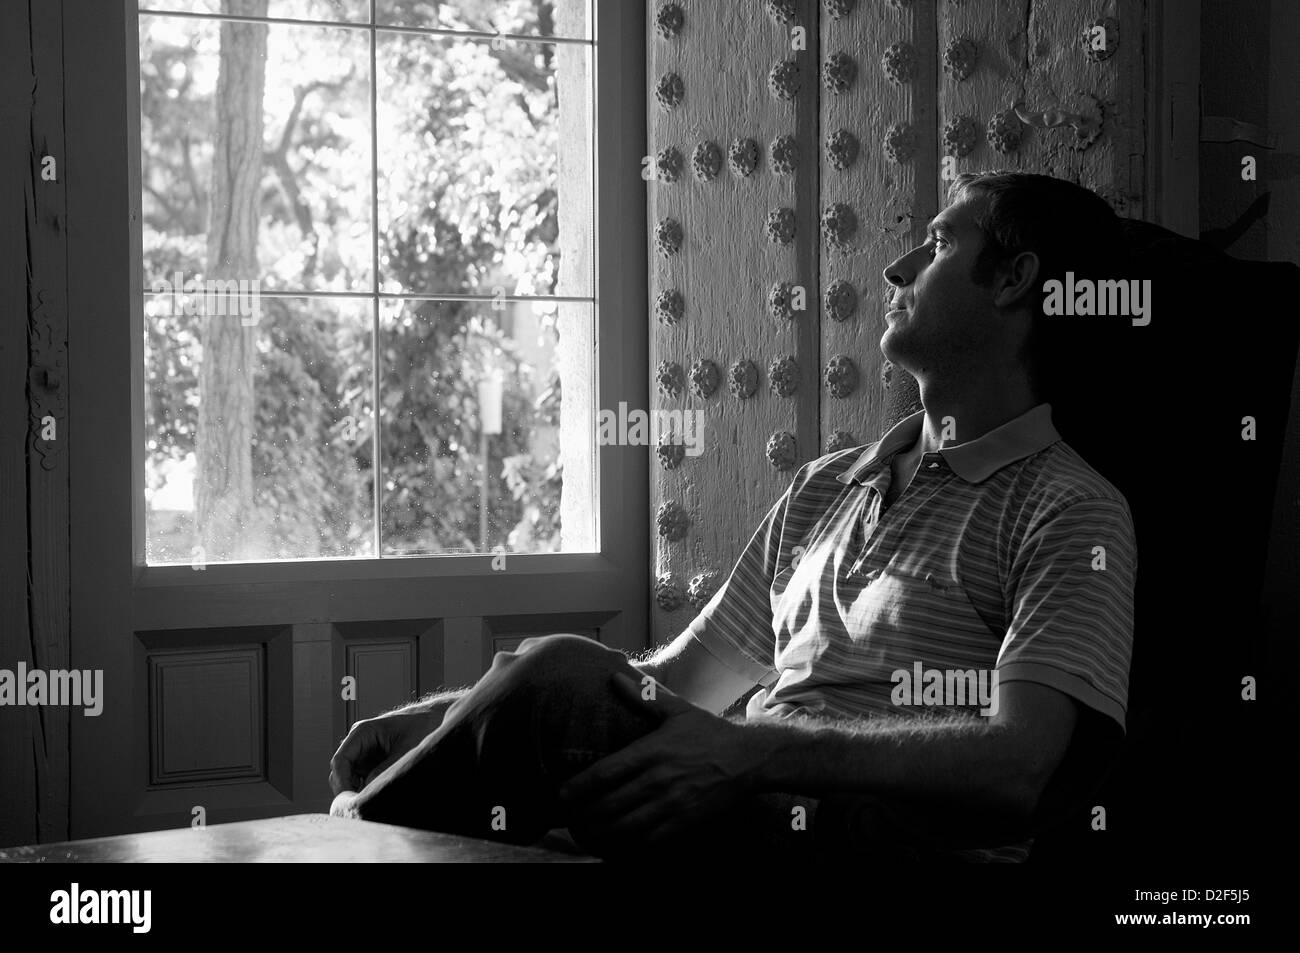 Mature man sitting, looking through the window. Black and white. - Stock Image